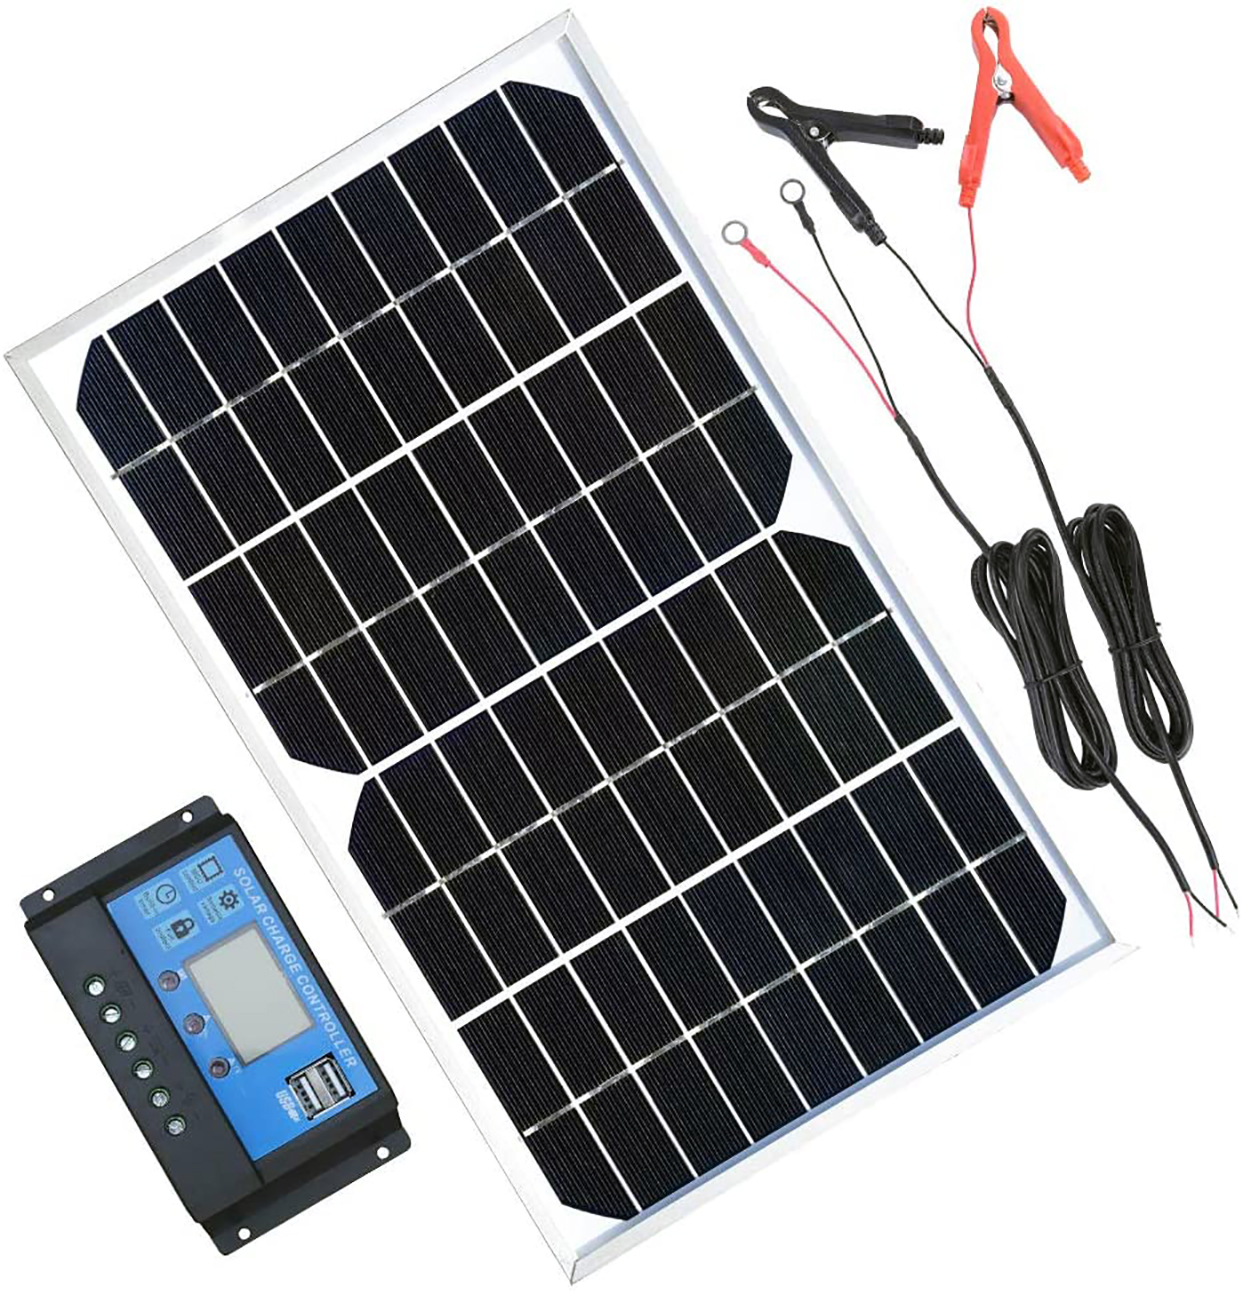 Solar Panel Kit 10W 12V review